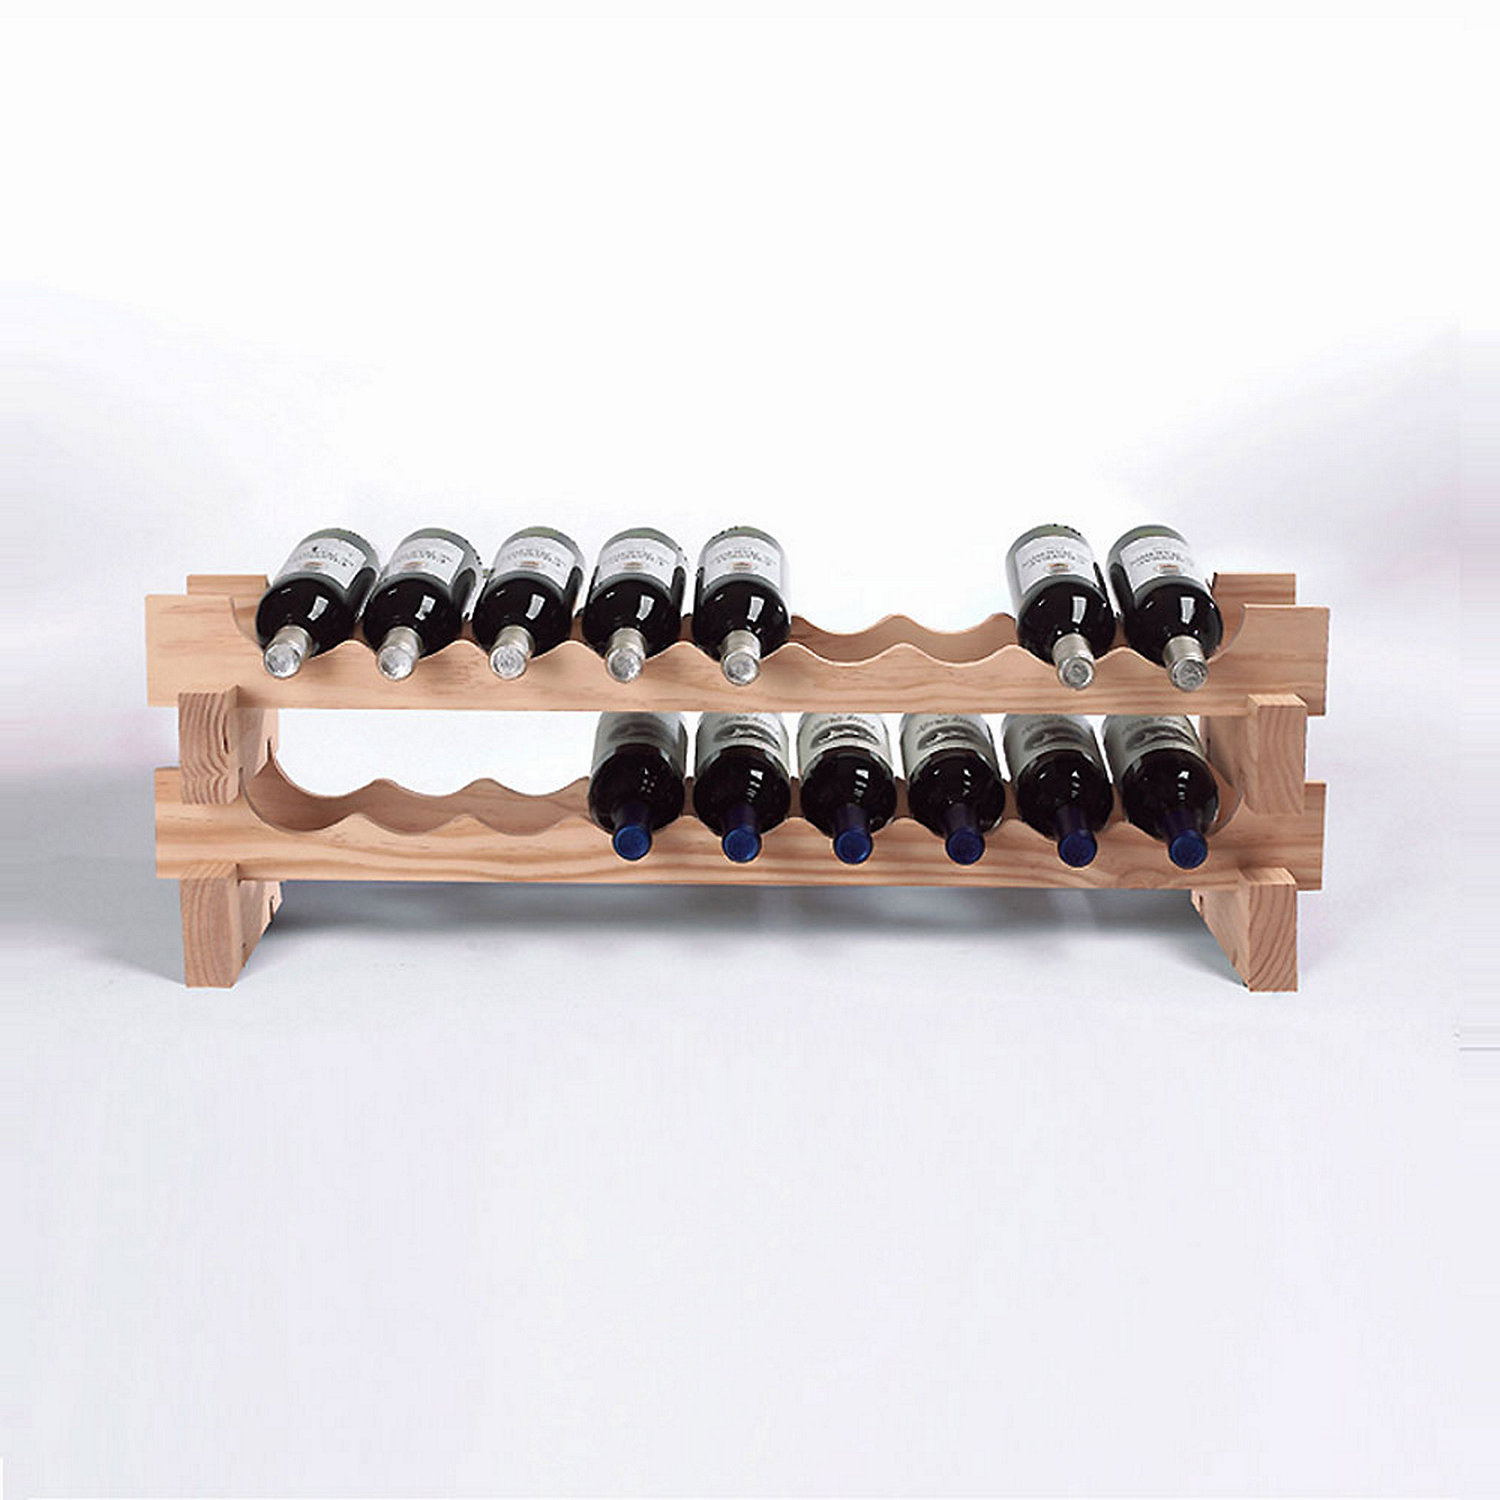 How To Make A Wine Rack Stackable Wine Racks Home Decor